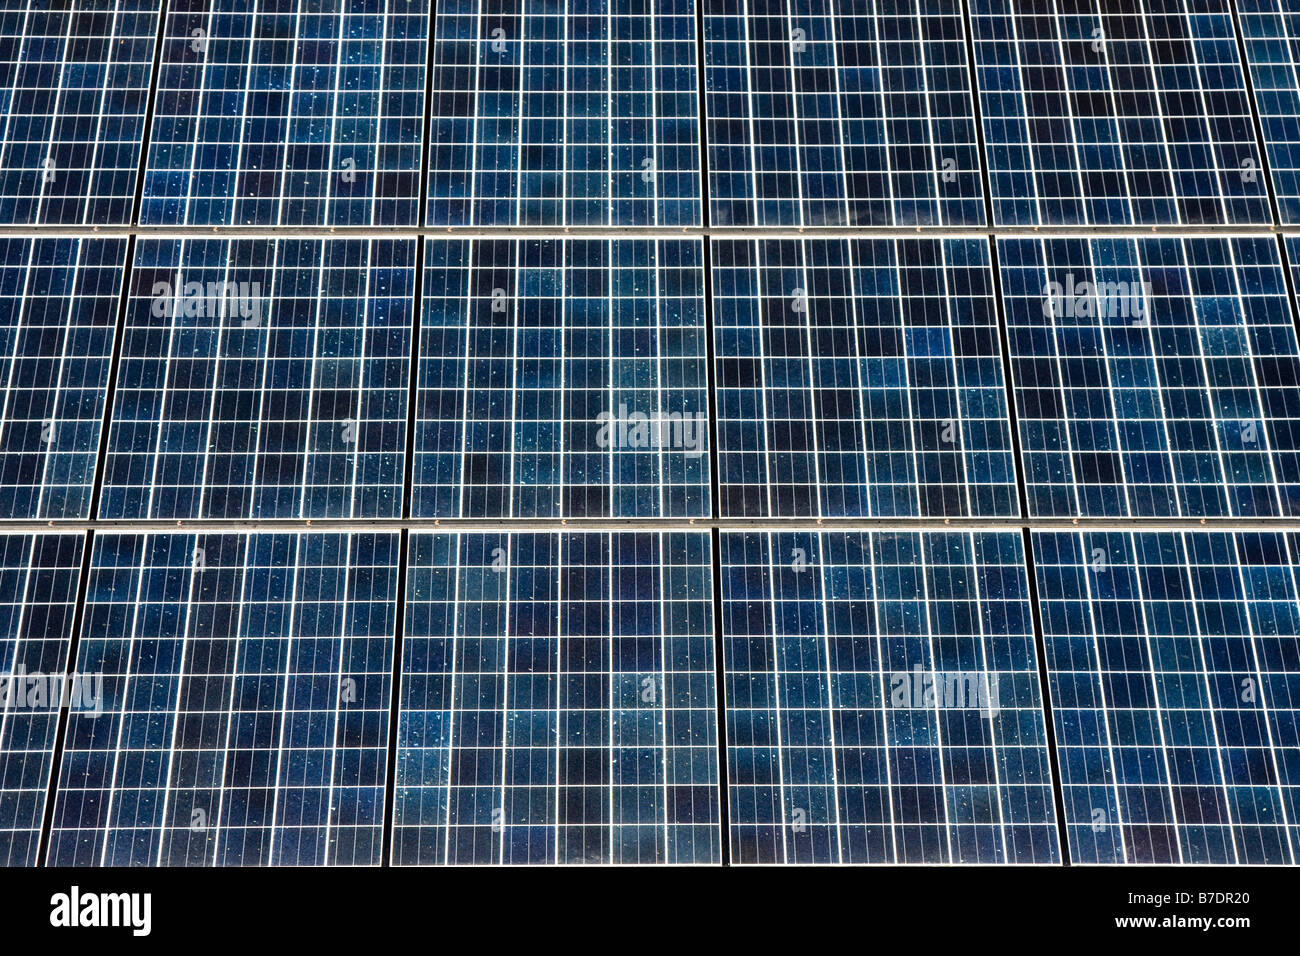 Series of Photovoltaic Solar Panels for Electricity Production - Stock Image